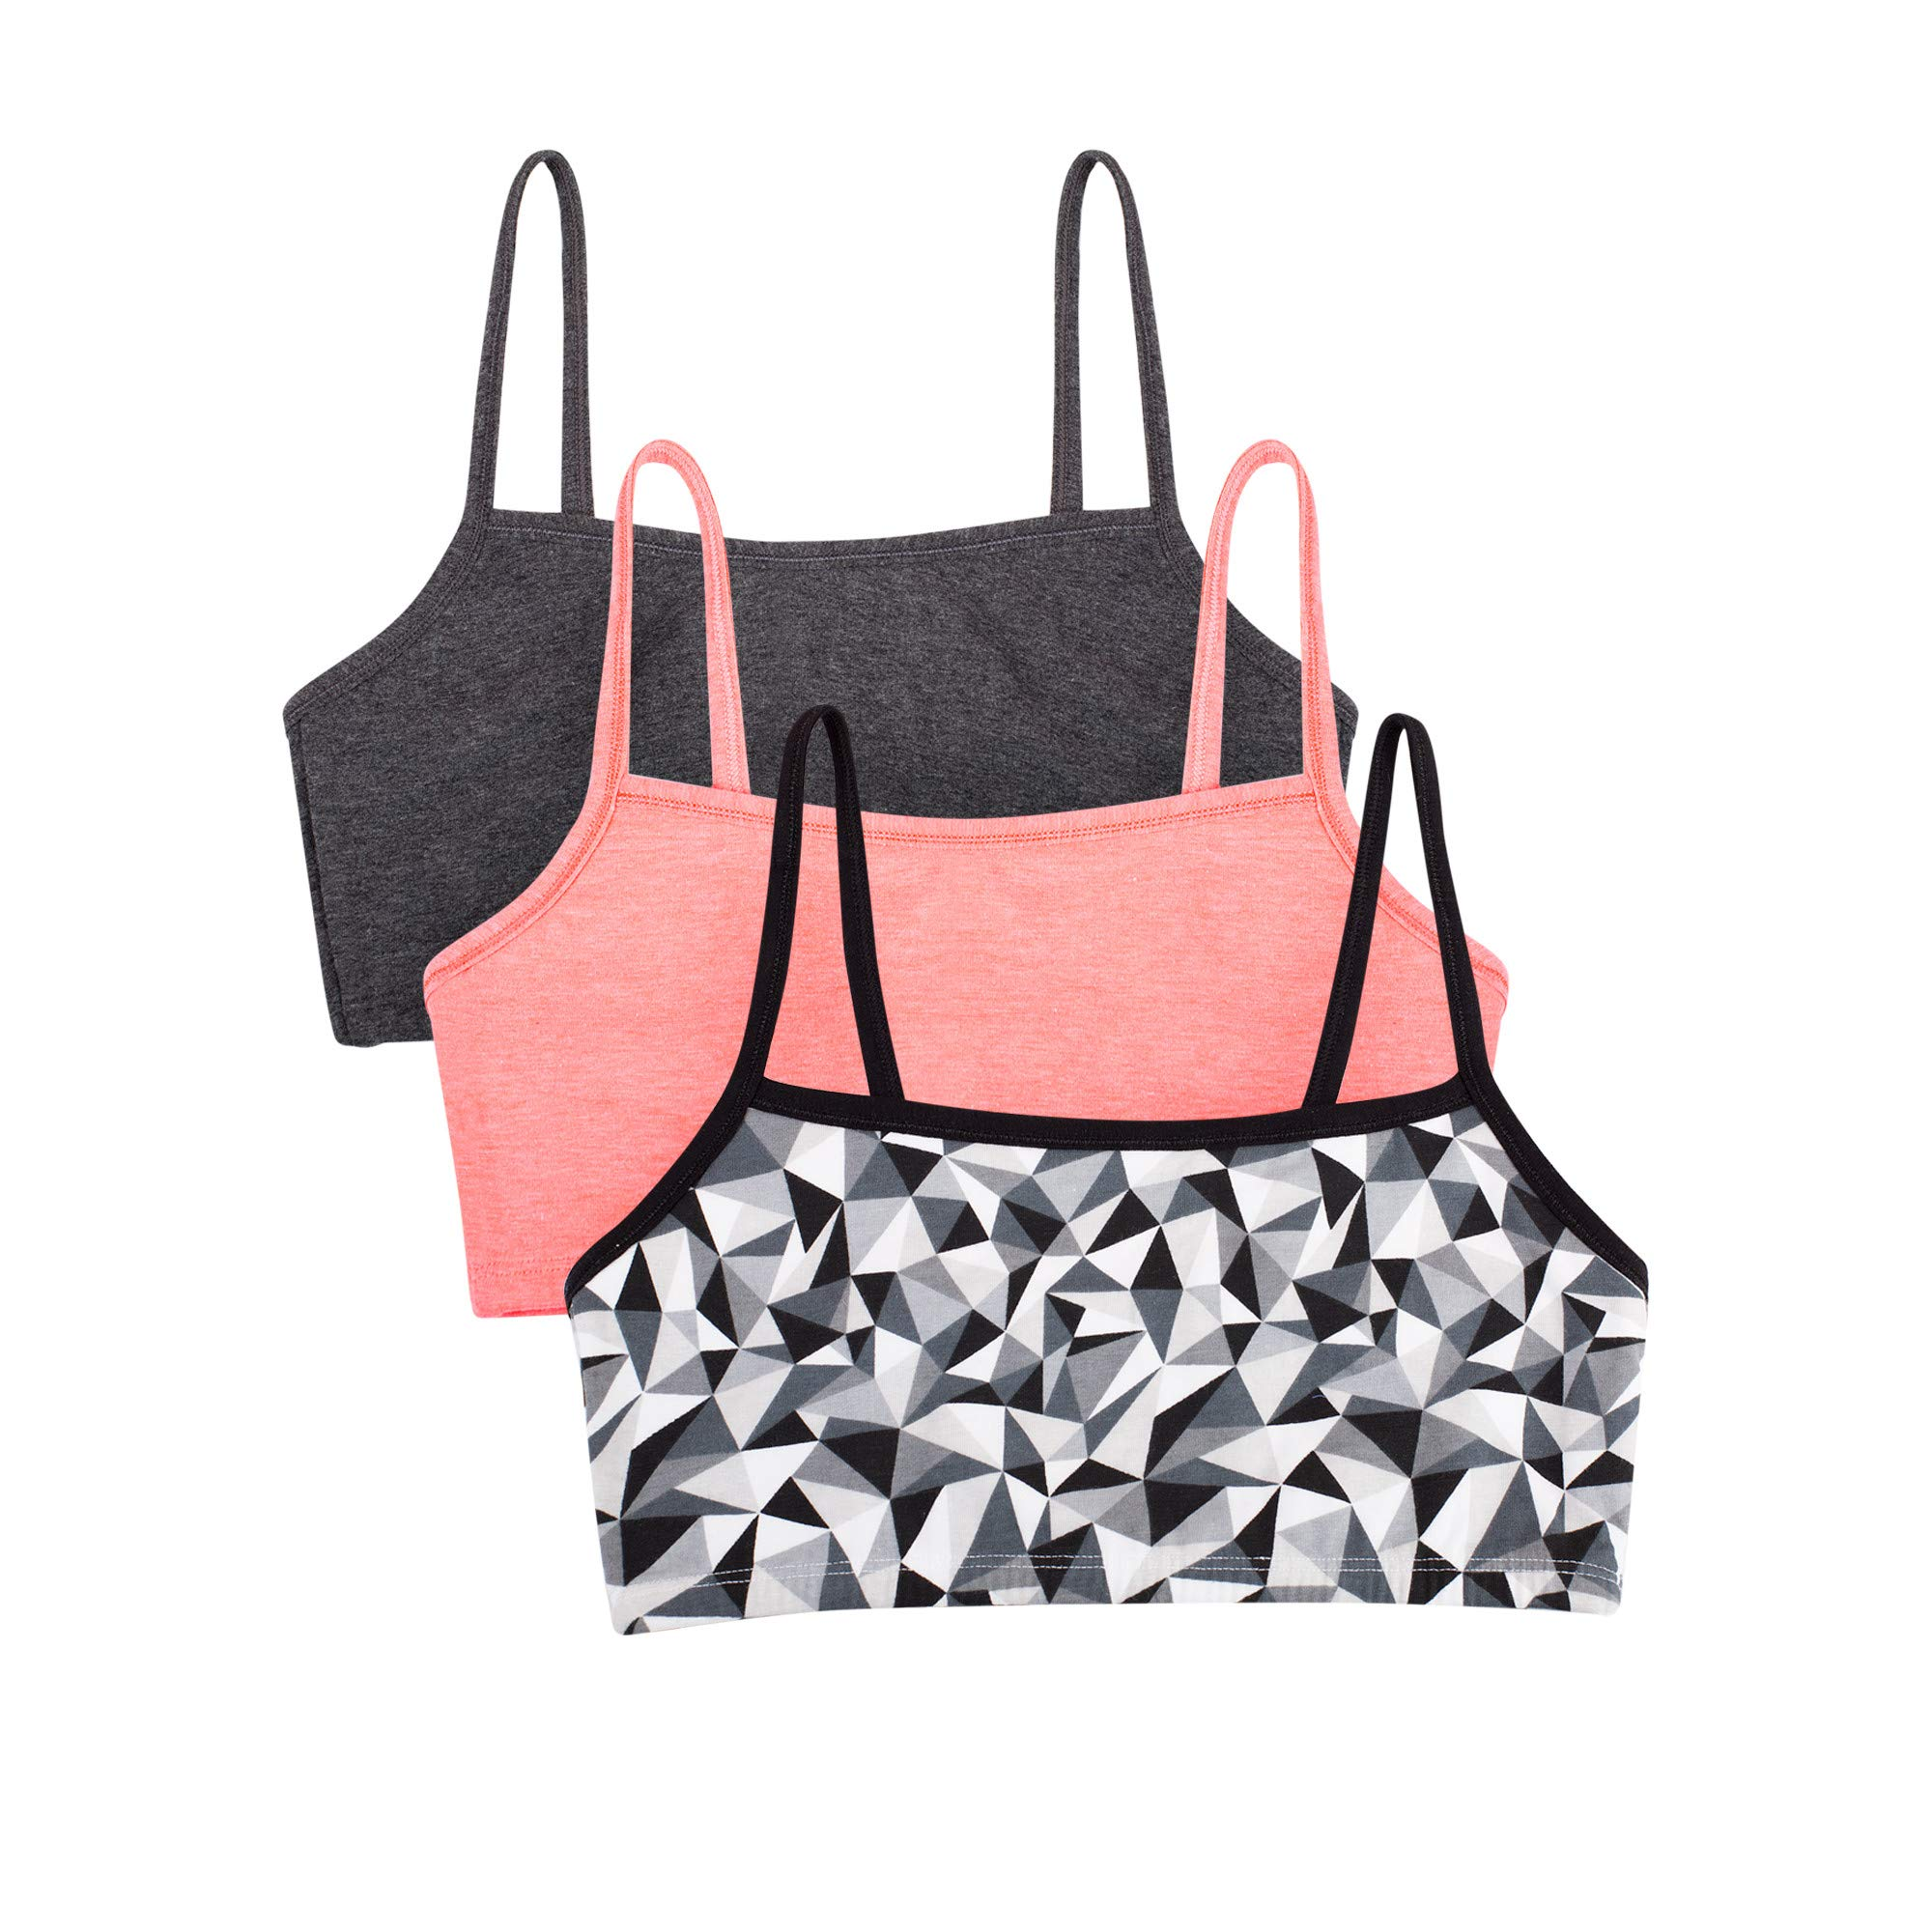 Fruit of the Loom womens Cotton Pullover Sport Bra, kaleidoscope/charcoal/punchy peach 44 by Fruit of the Loom